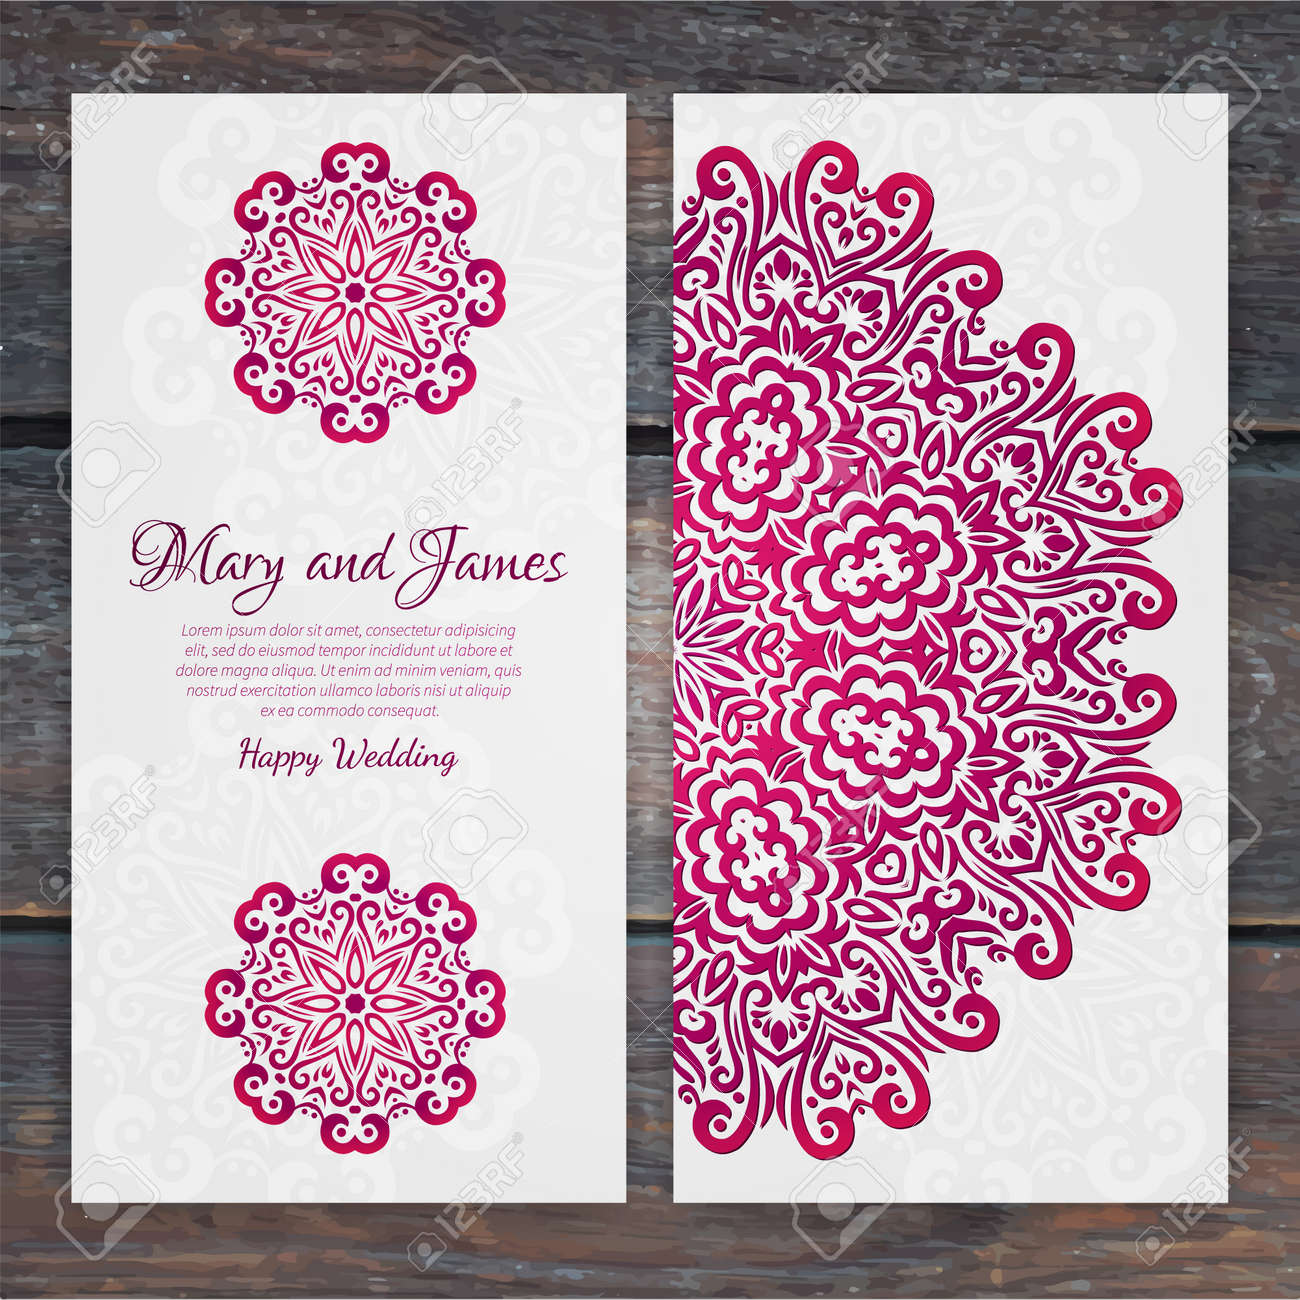 Lacy Vector Wedding Card Template Romantic Vintage Wedding – Wedding Card Template